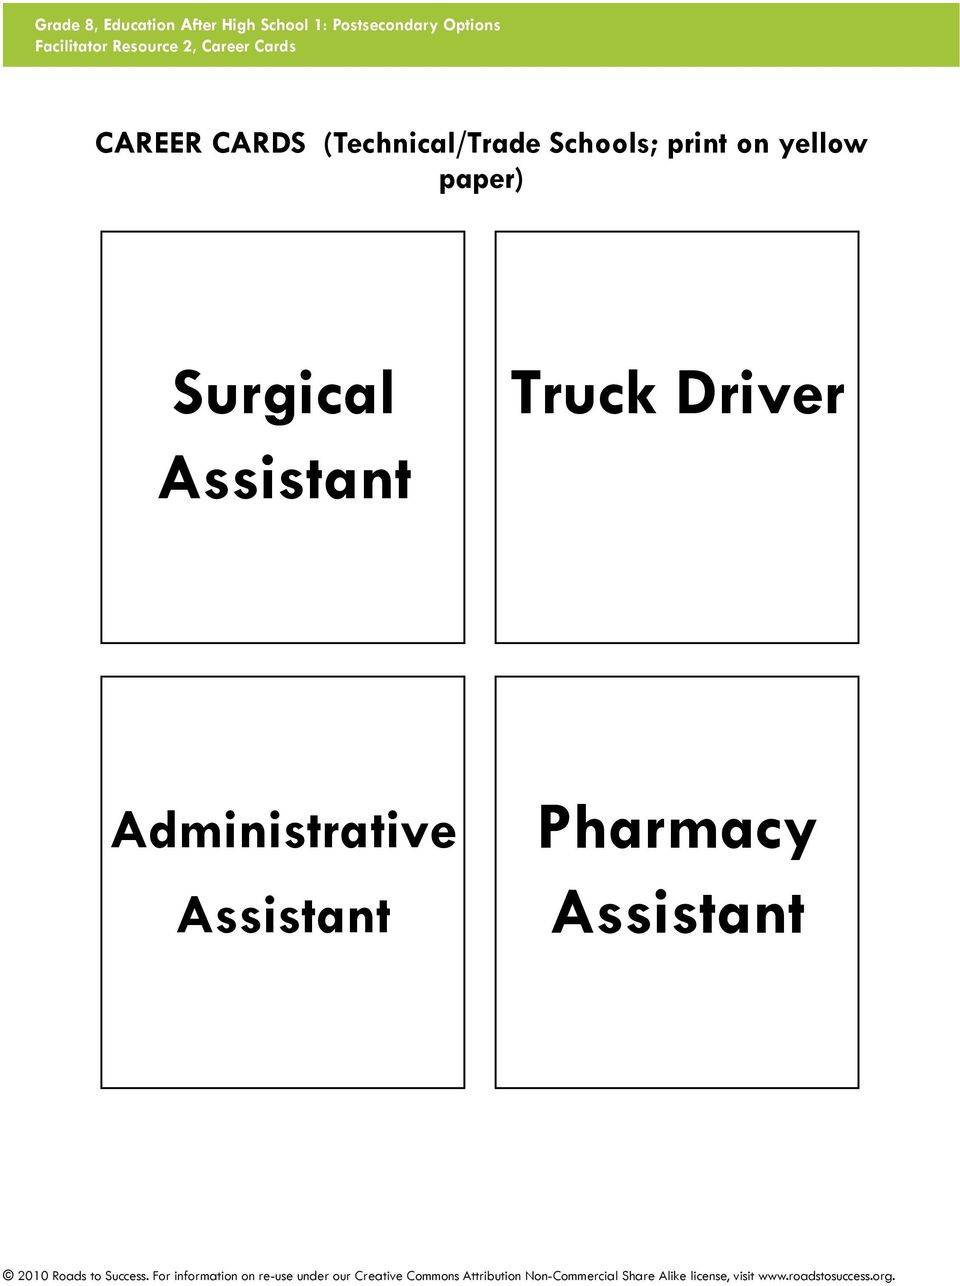 yellow paper) Surgical Assistant Truck